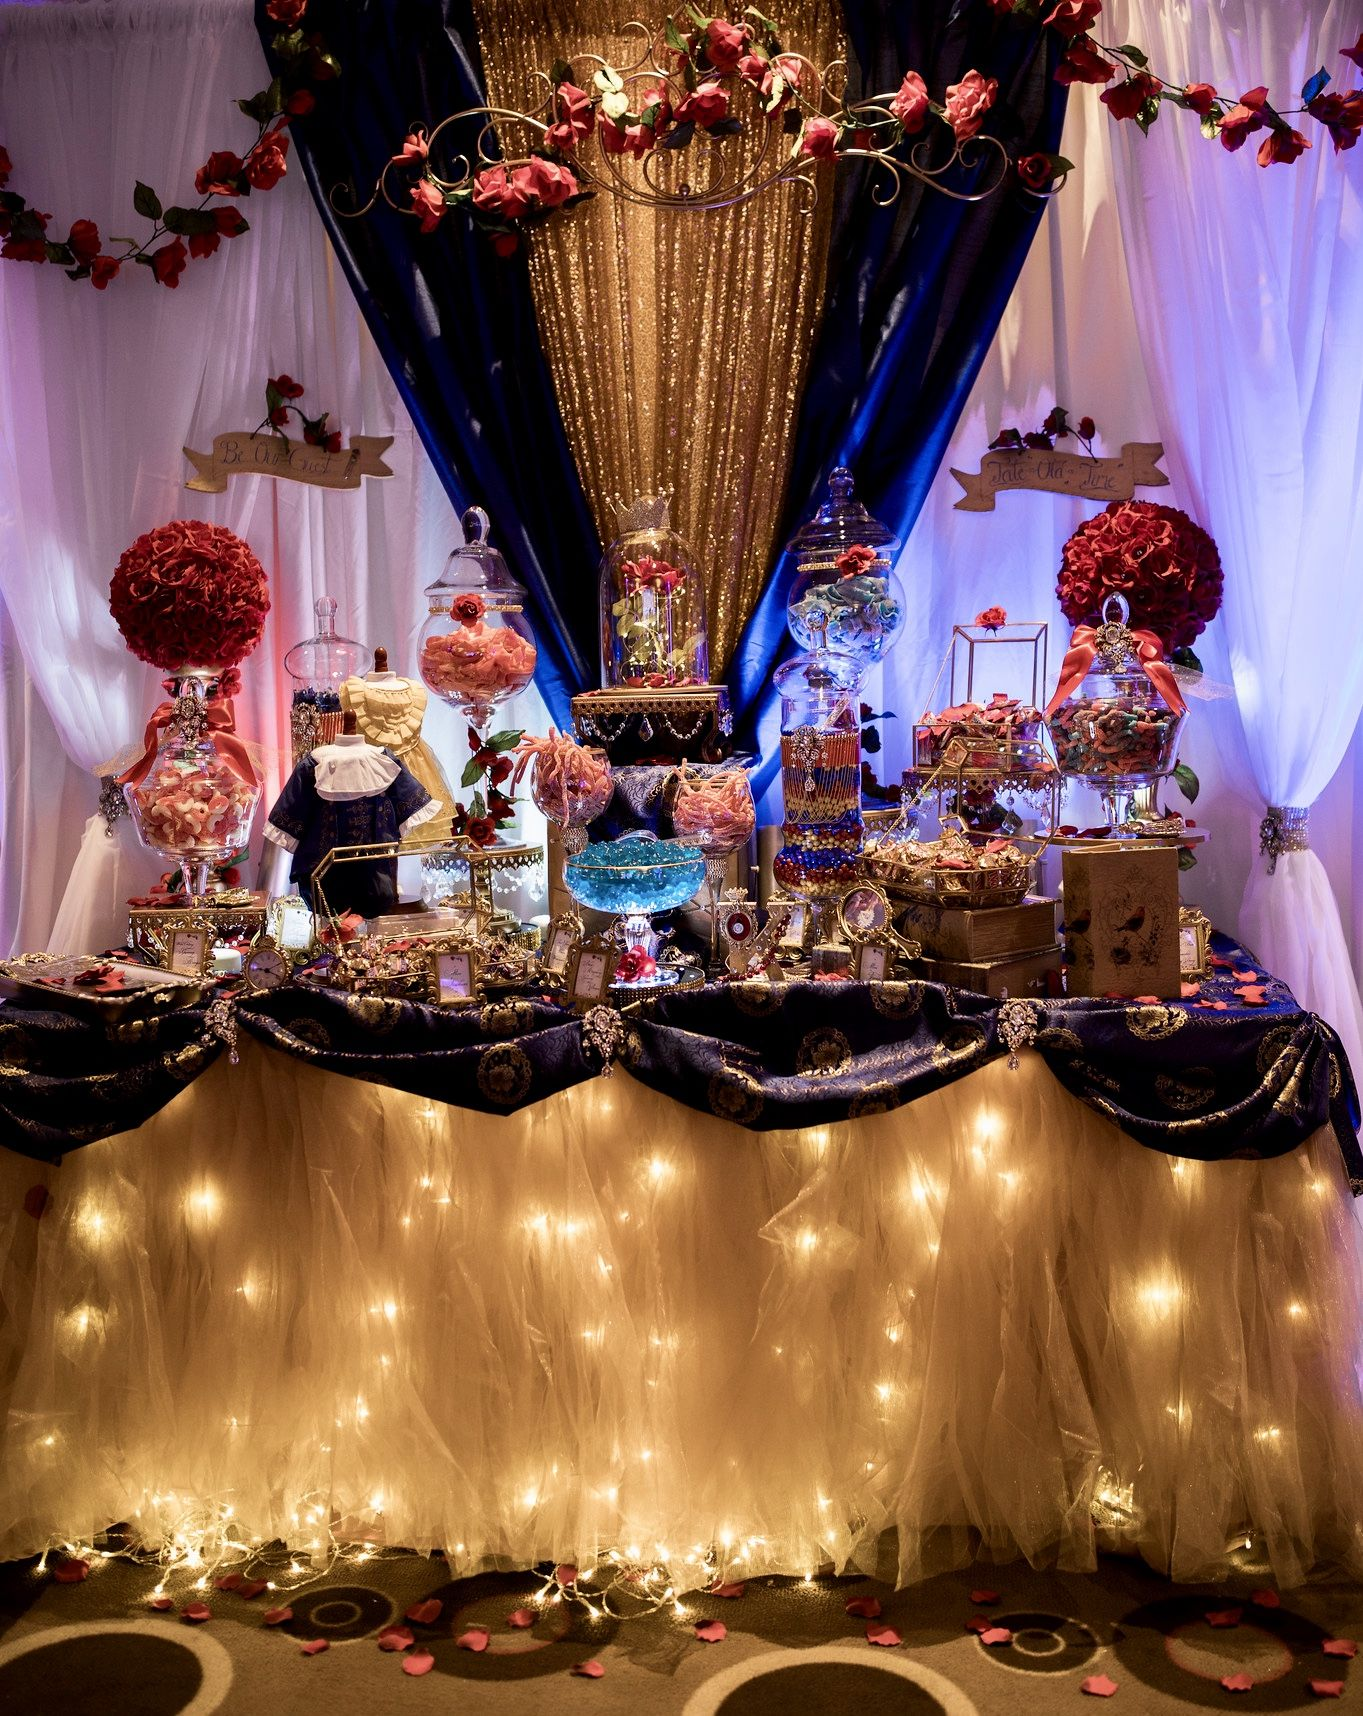 Beauty And The Beast Inspired Candy Table By Lechicboutique 1 Lechicboutique 1 Lechi Beauty And The Beast Theme Beauty And The Beast Party Beast Decorations